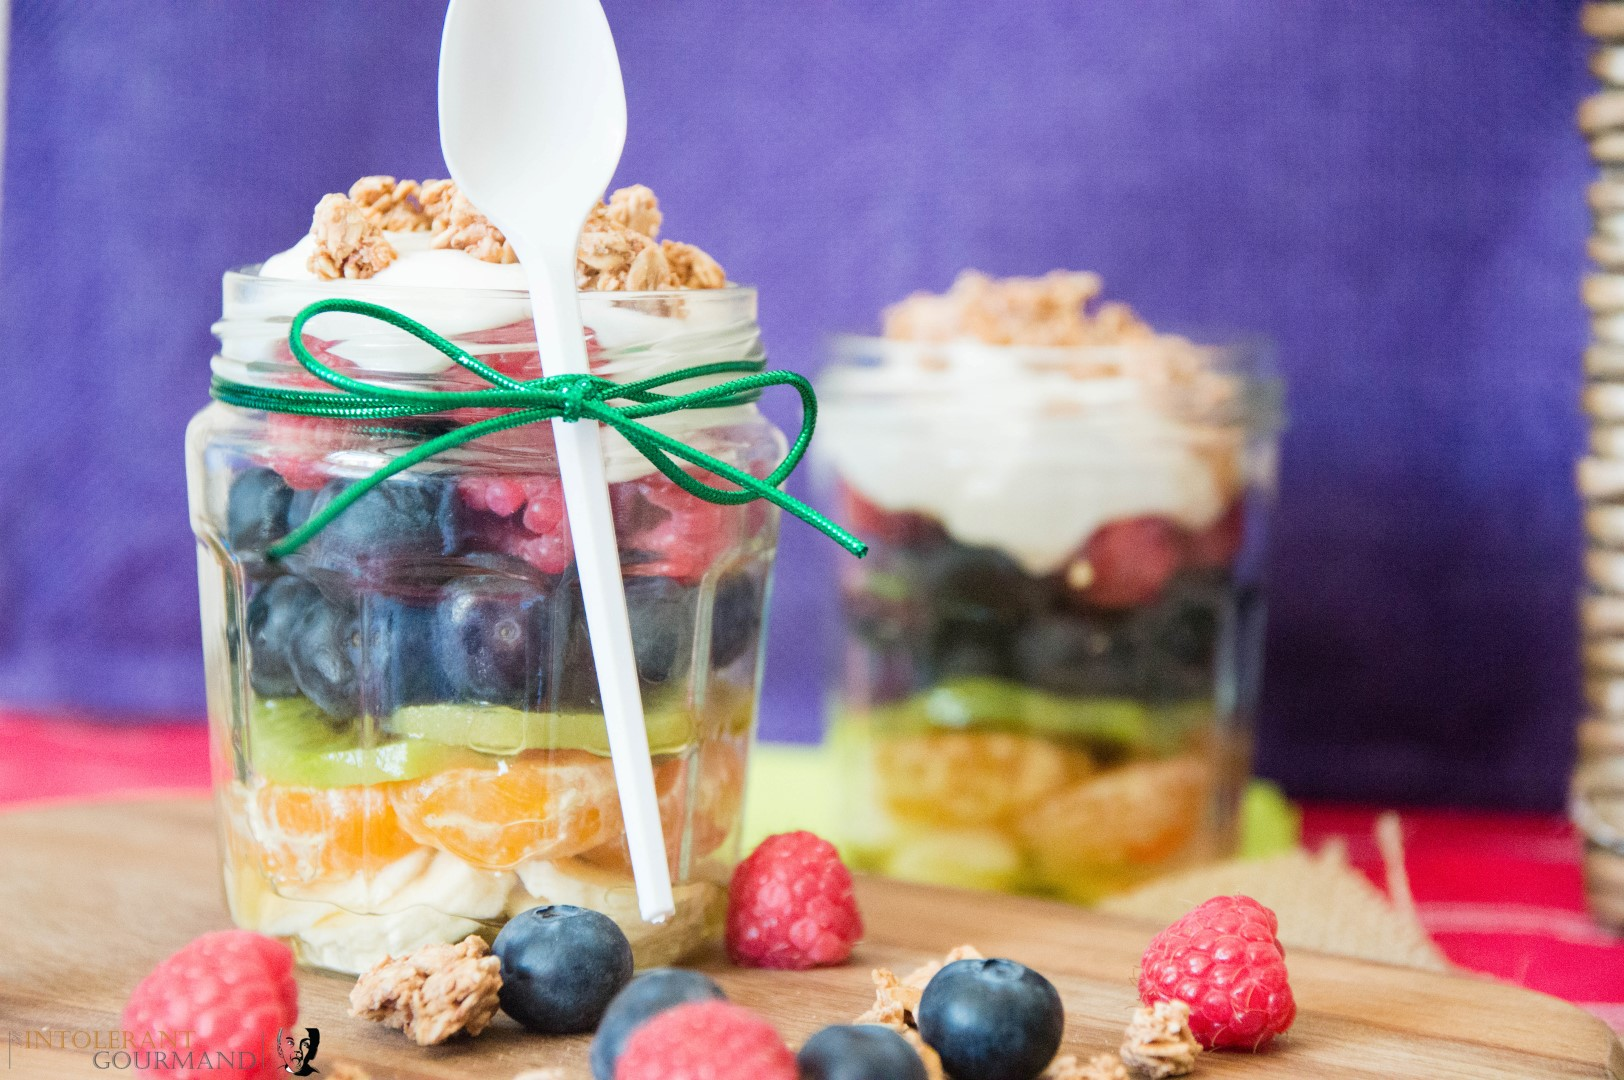 Rainbow Fruit Salad - naturally top14 allergen free, and bursting with flavour! We've teamed these delicious fruits with a dairy-free creme fraiche topping, along with gluten-free granola. Perfect for a #freefrompicnic www.intolerantgourmand.com